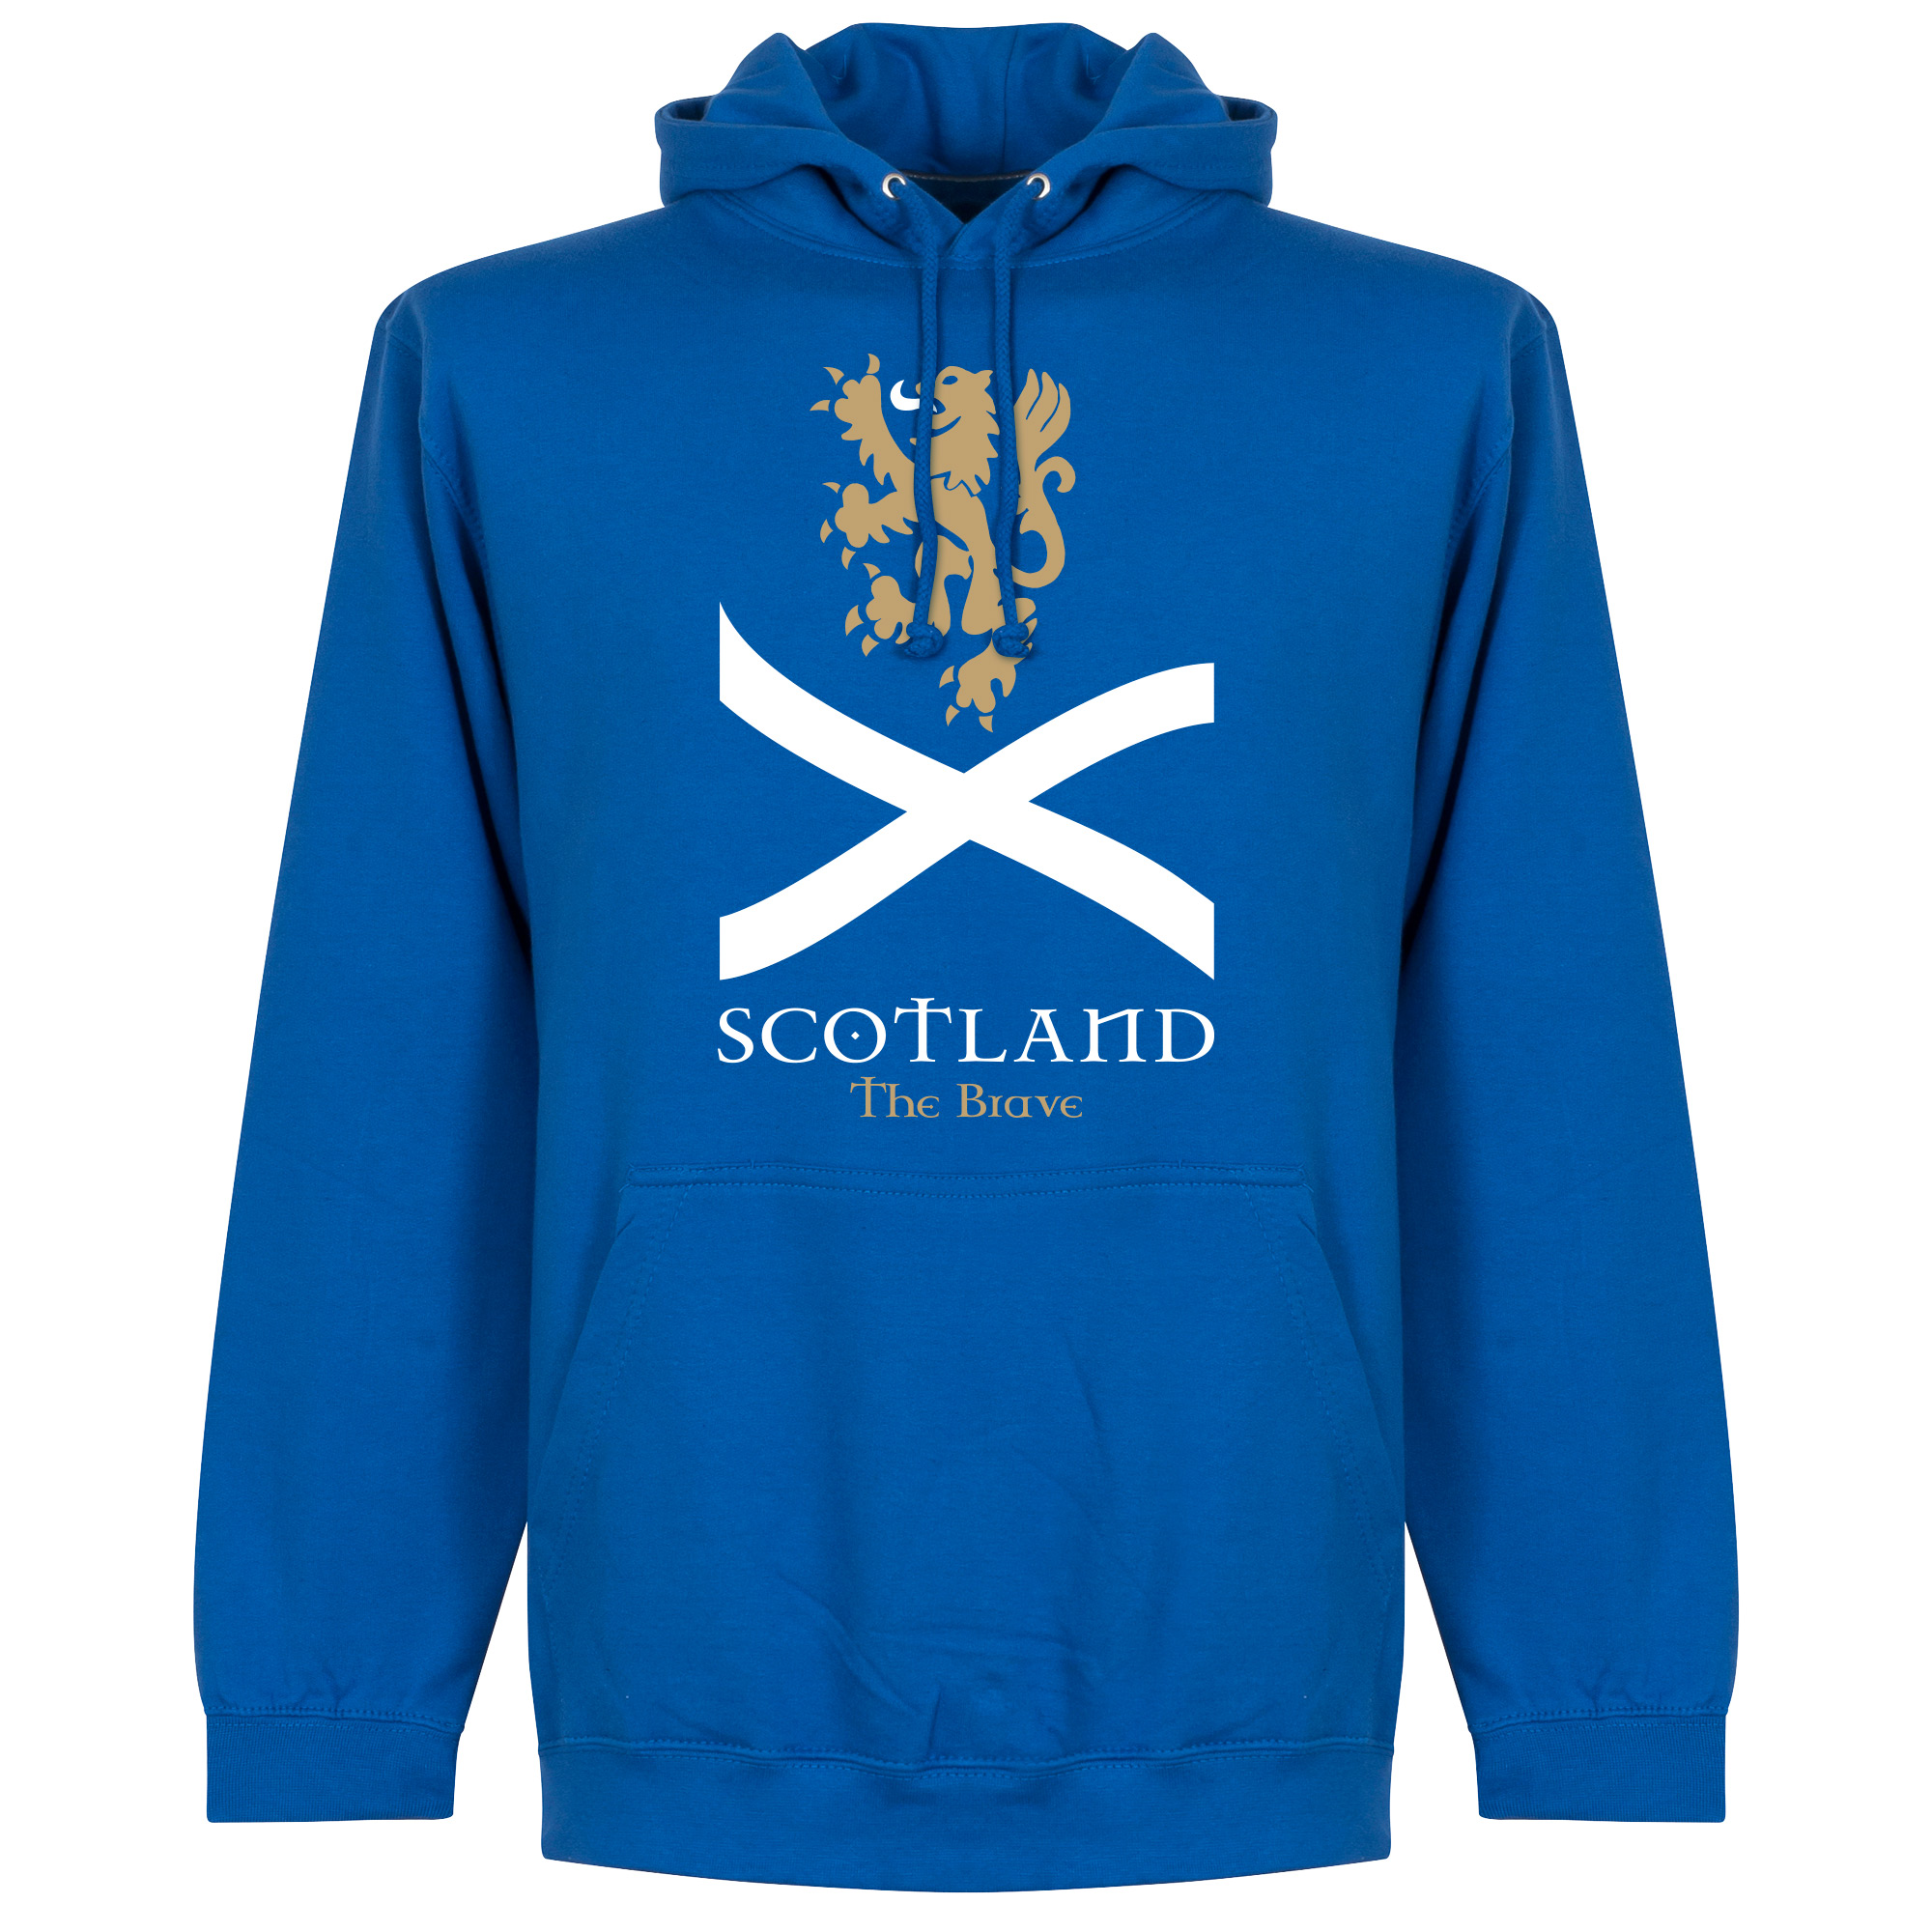 Scotland The Brave Hooded Sweater S